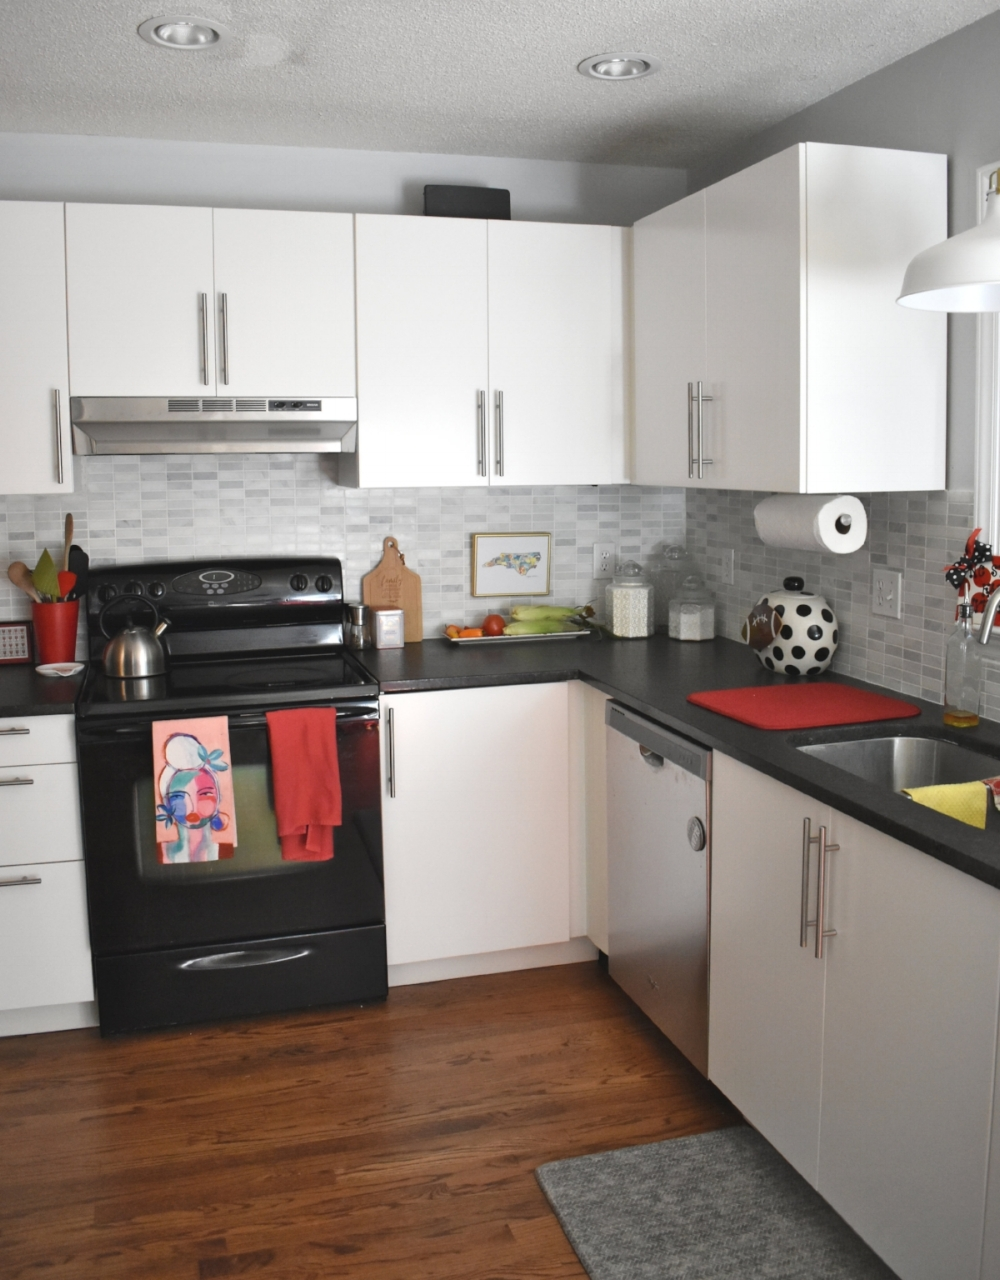 Bracey by Design - Kitchen Before and After